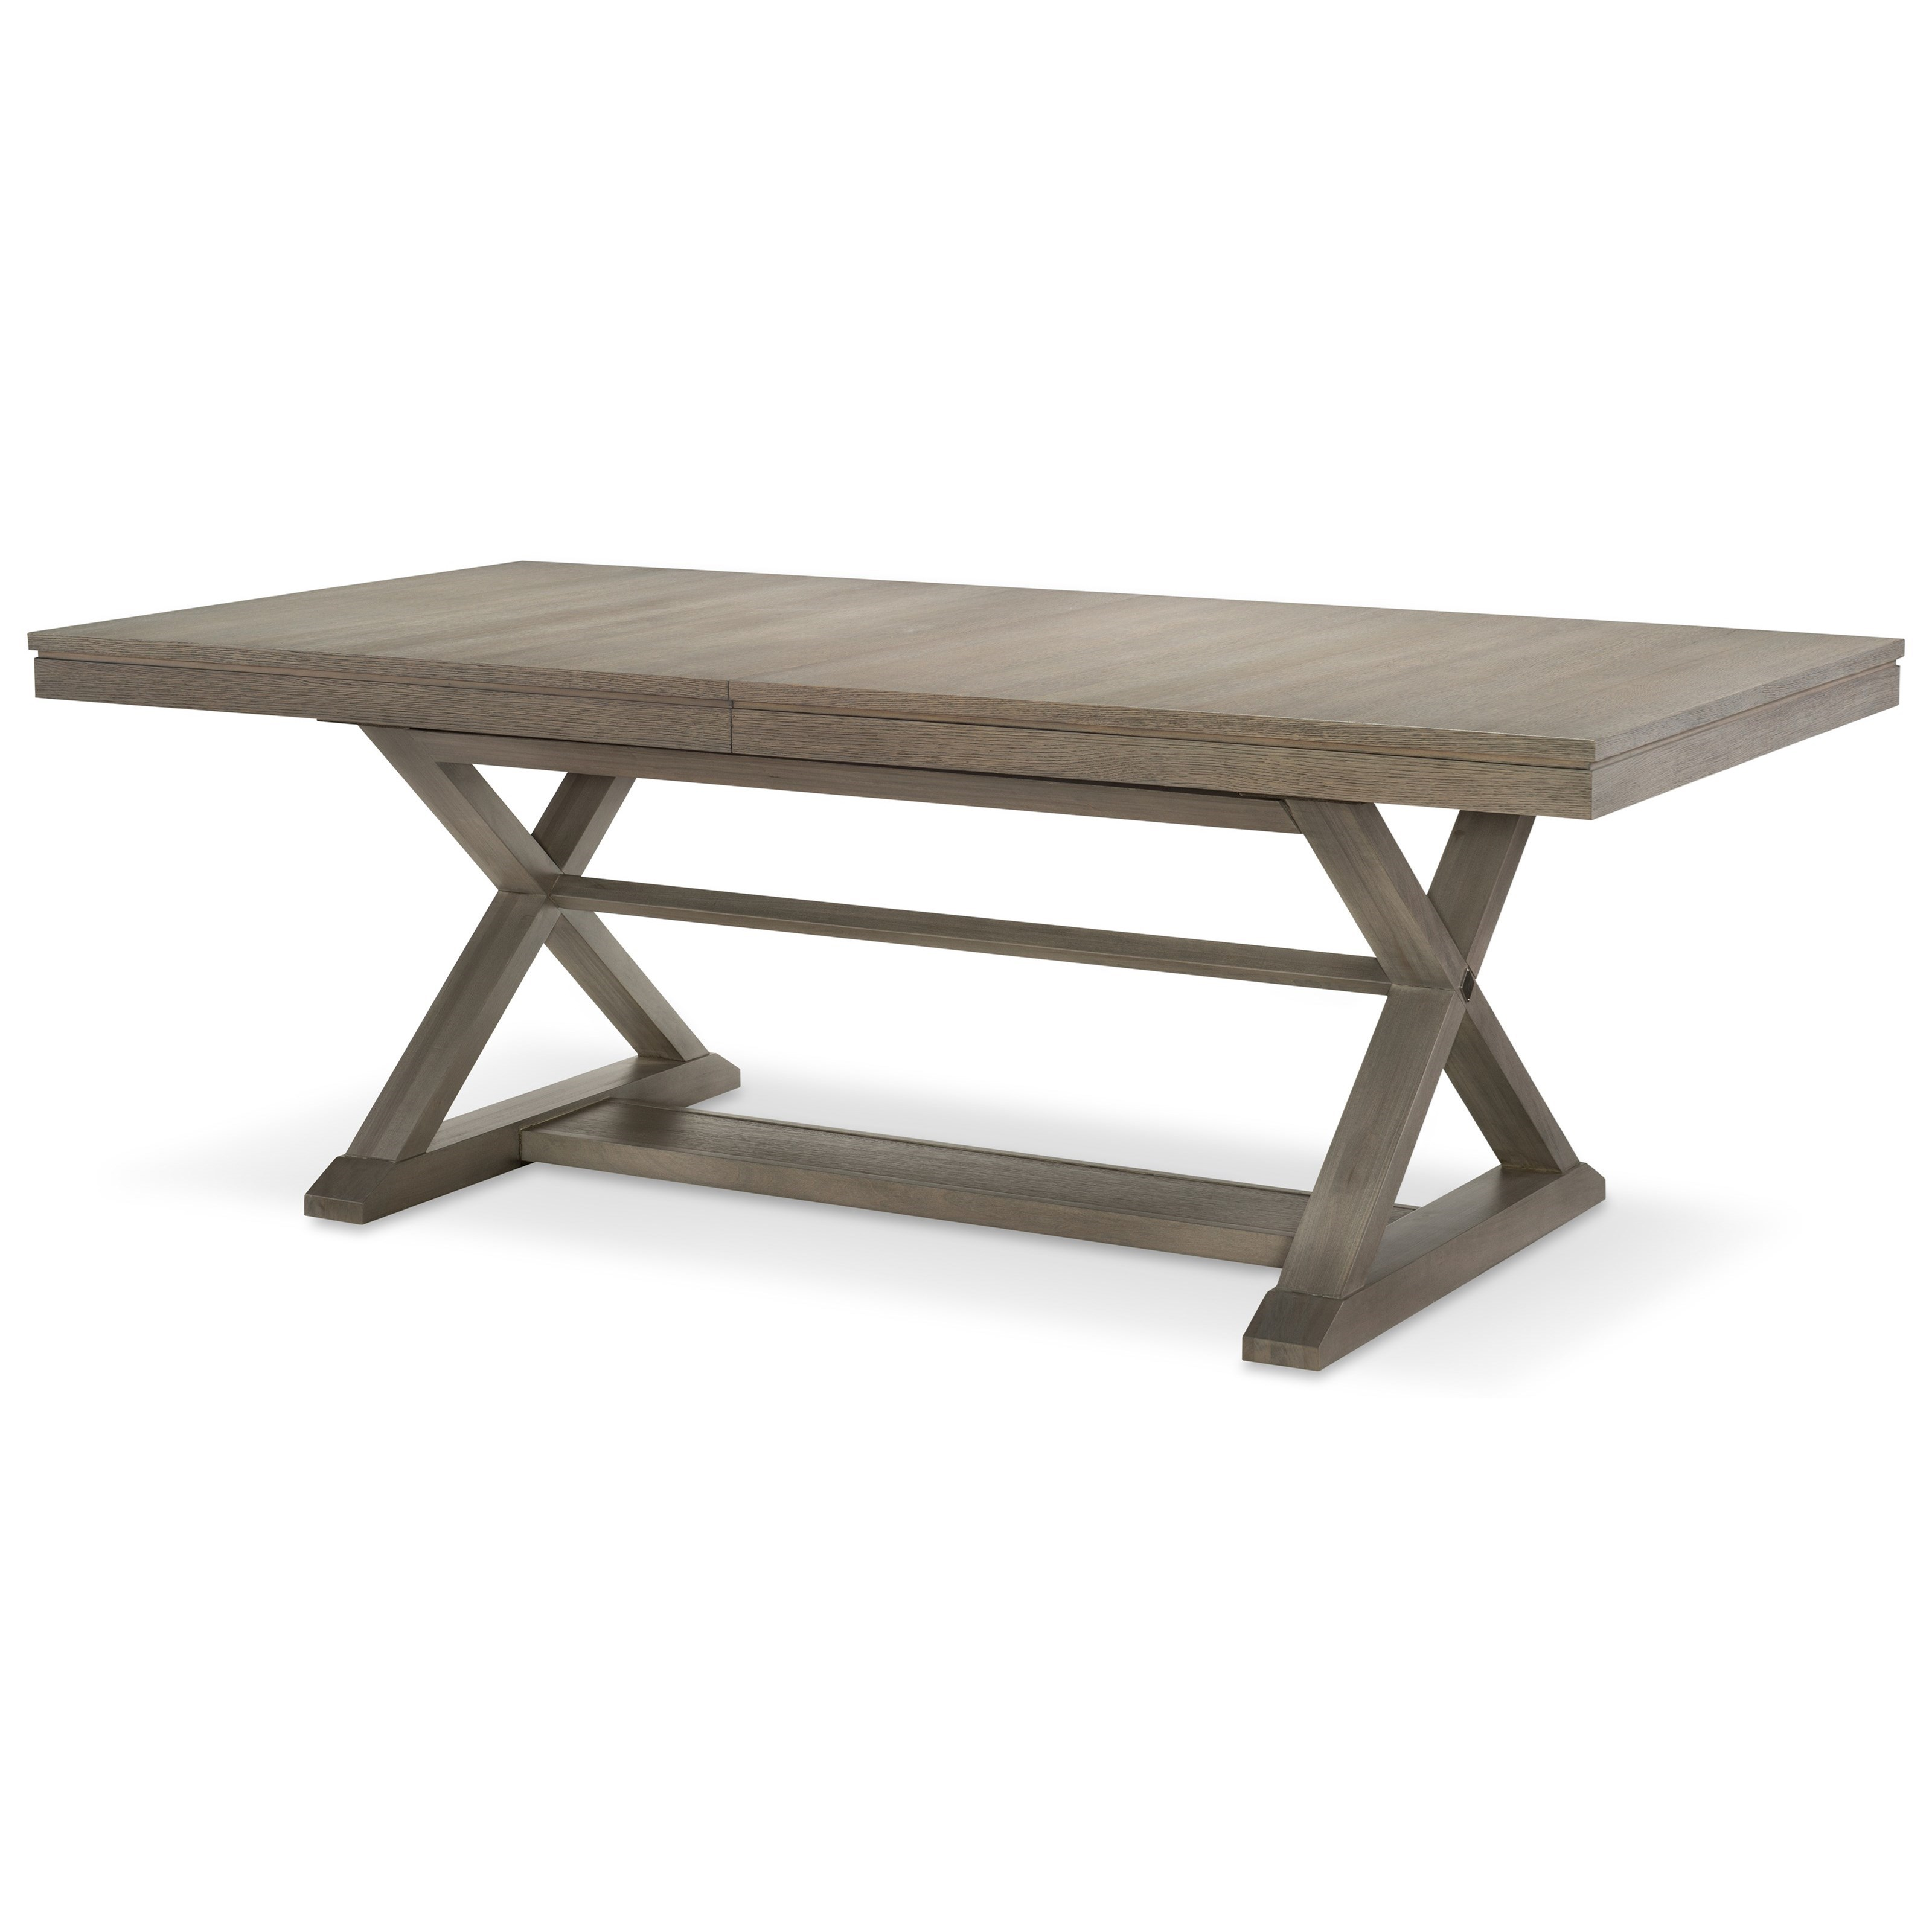 Highline Trestle Table by Rachael Ray Home by Legacy Classic at Baer's Furniture